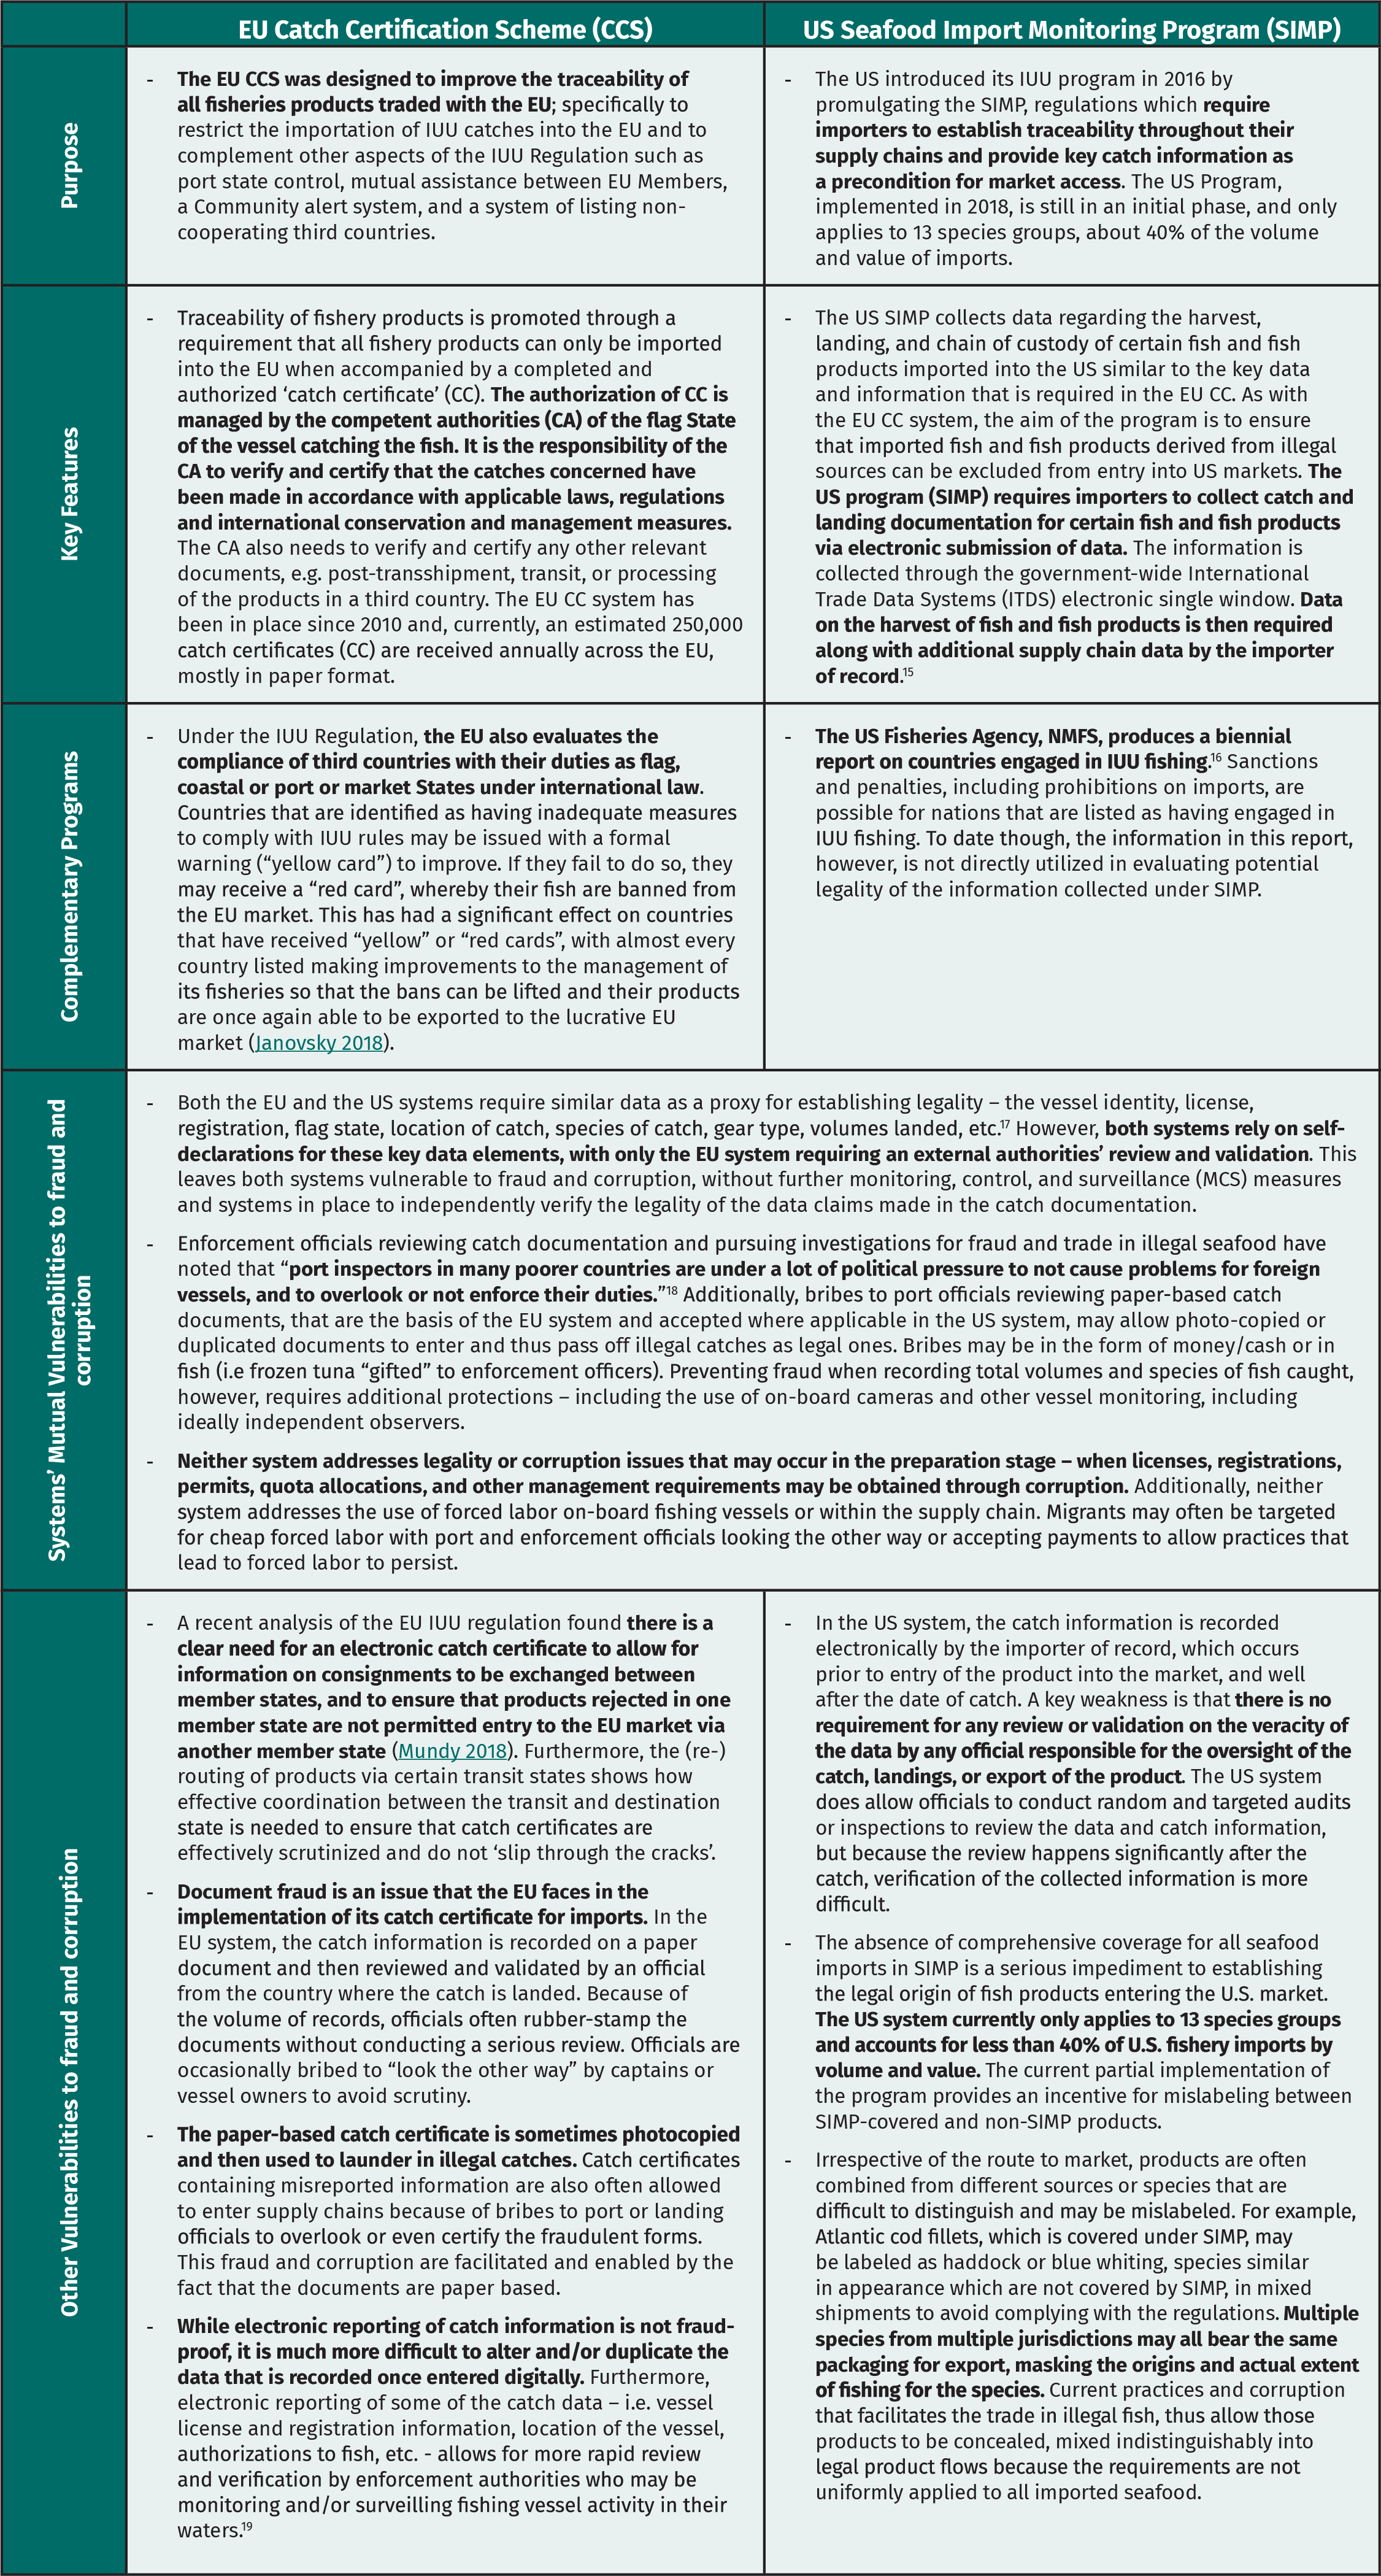 Detailed Strengths and Weaknesses of EU and US Transparency Requirements for Imported Seafood